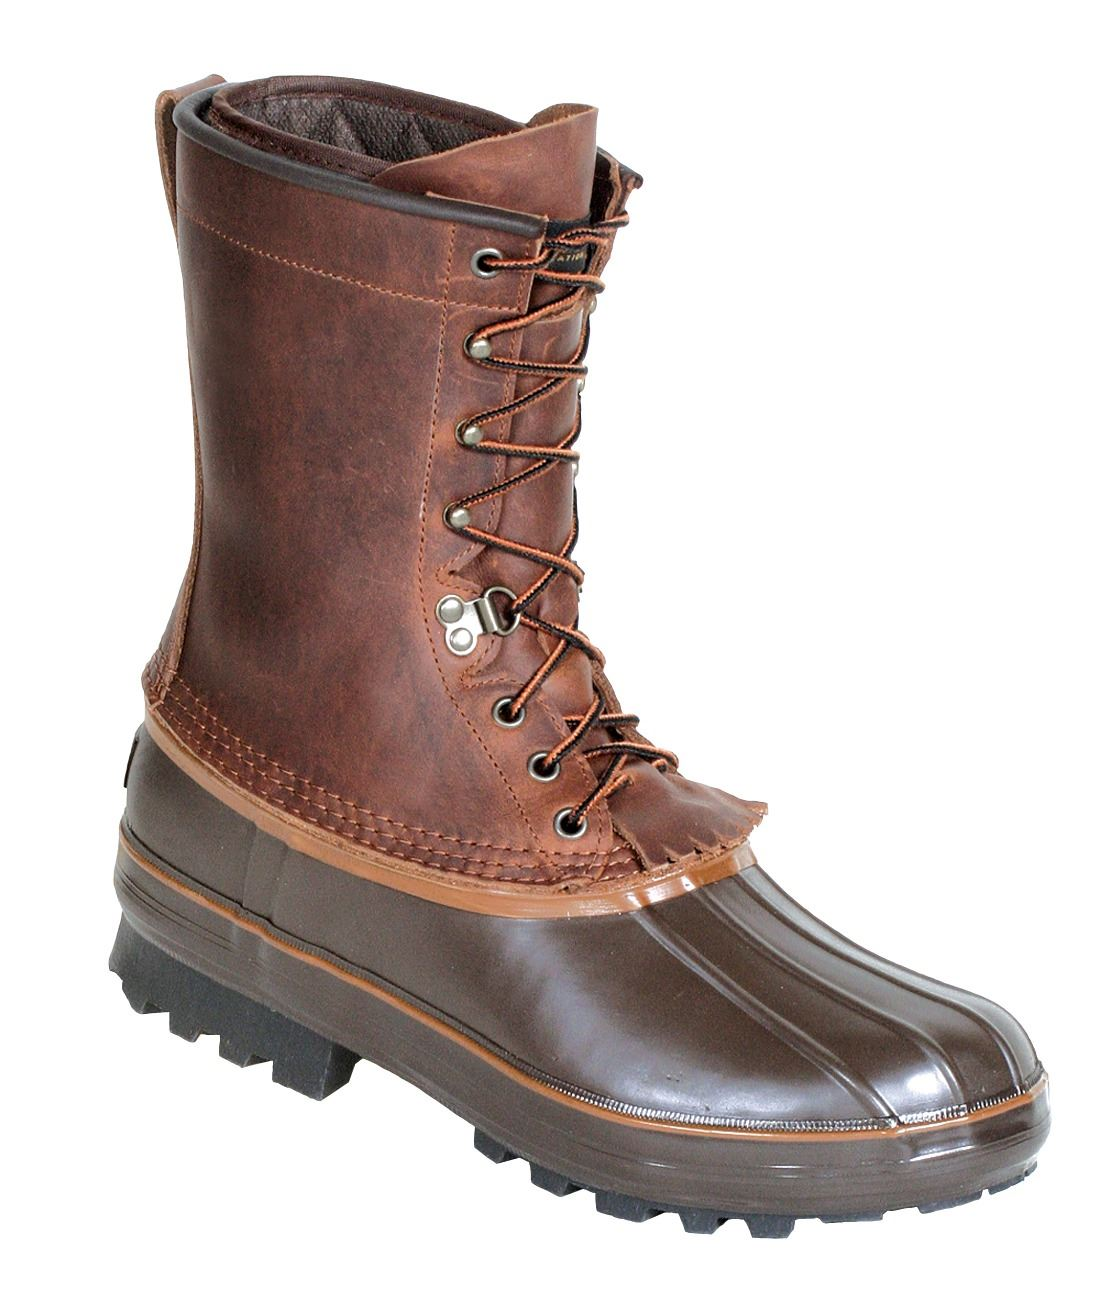 Kenetrek 10  Grizzly Boot with certificate for exchange or upgrade any men's or women's boot